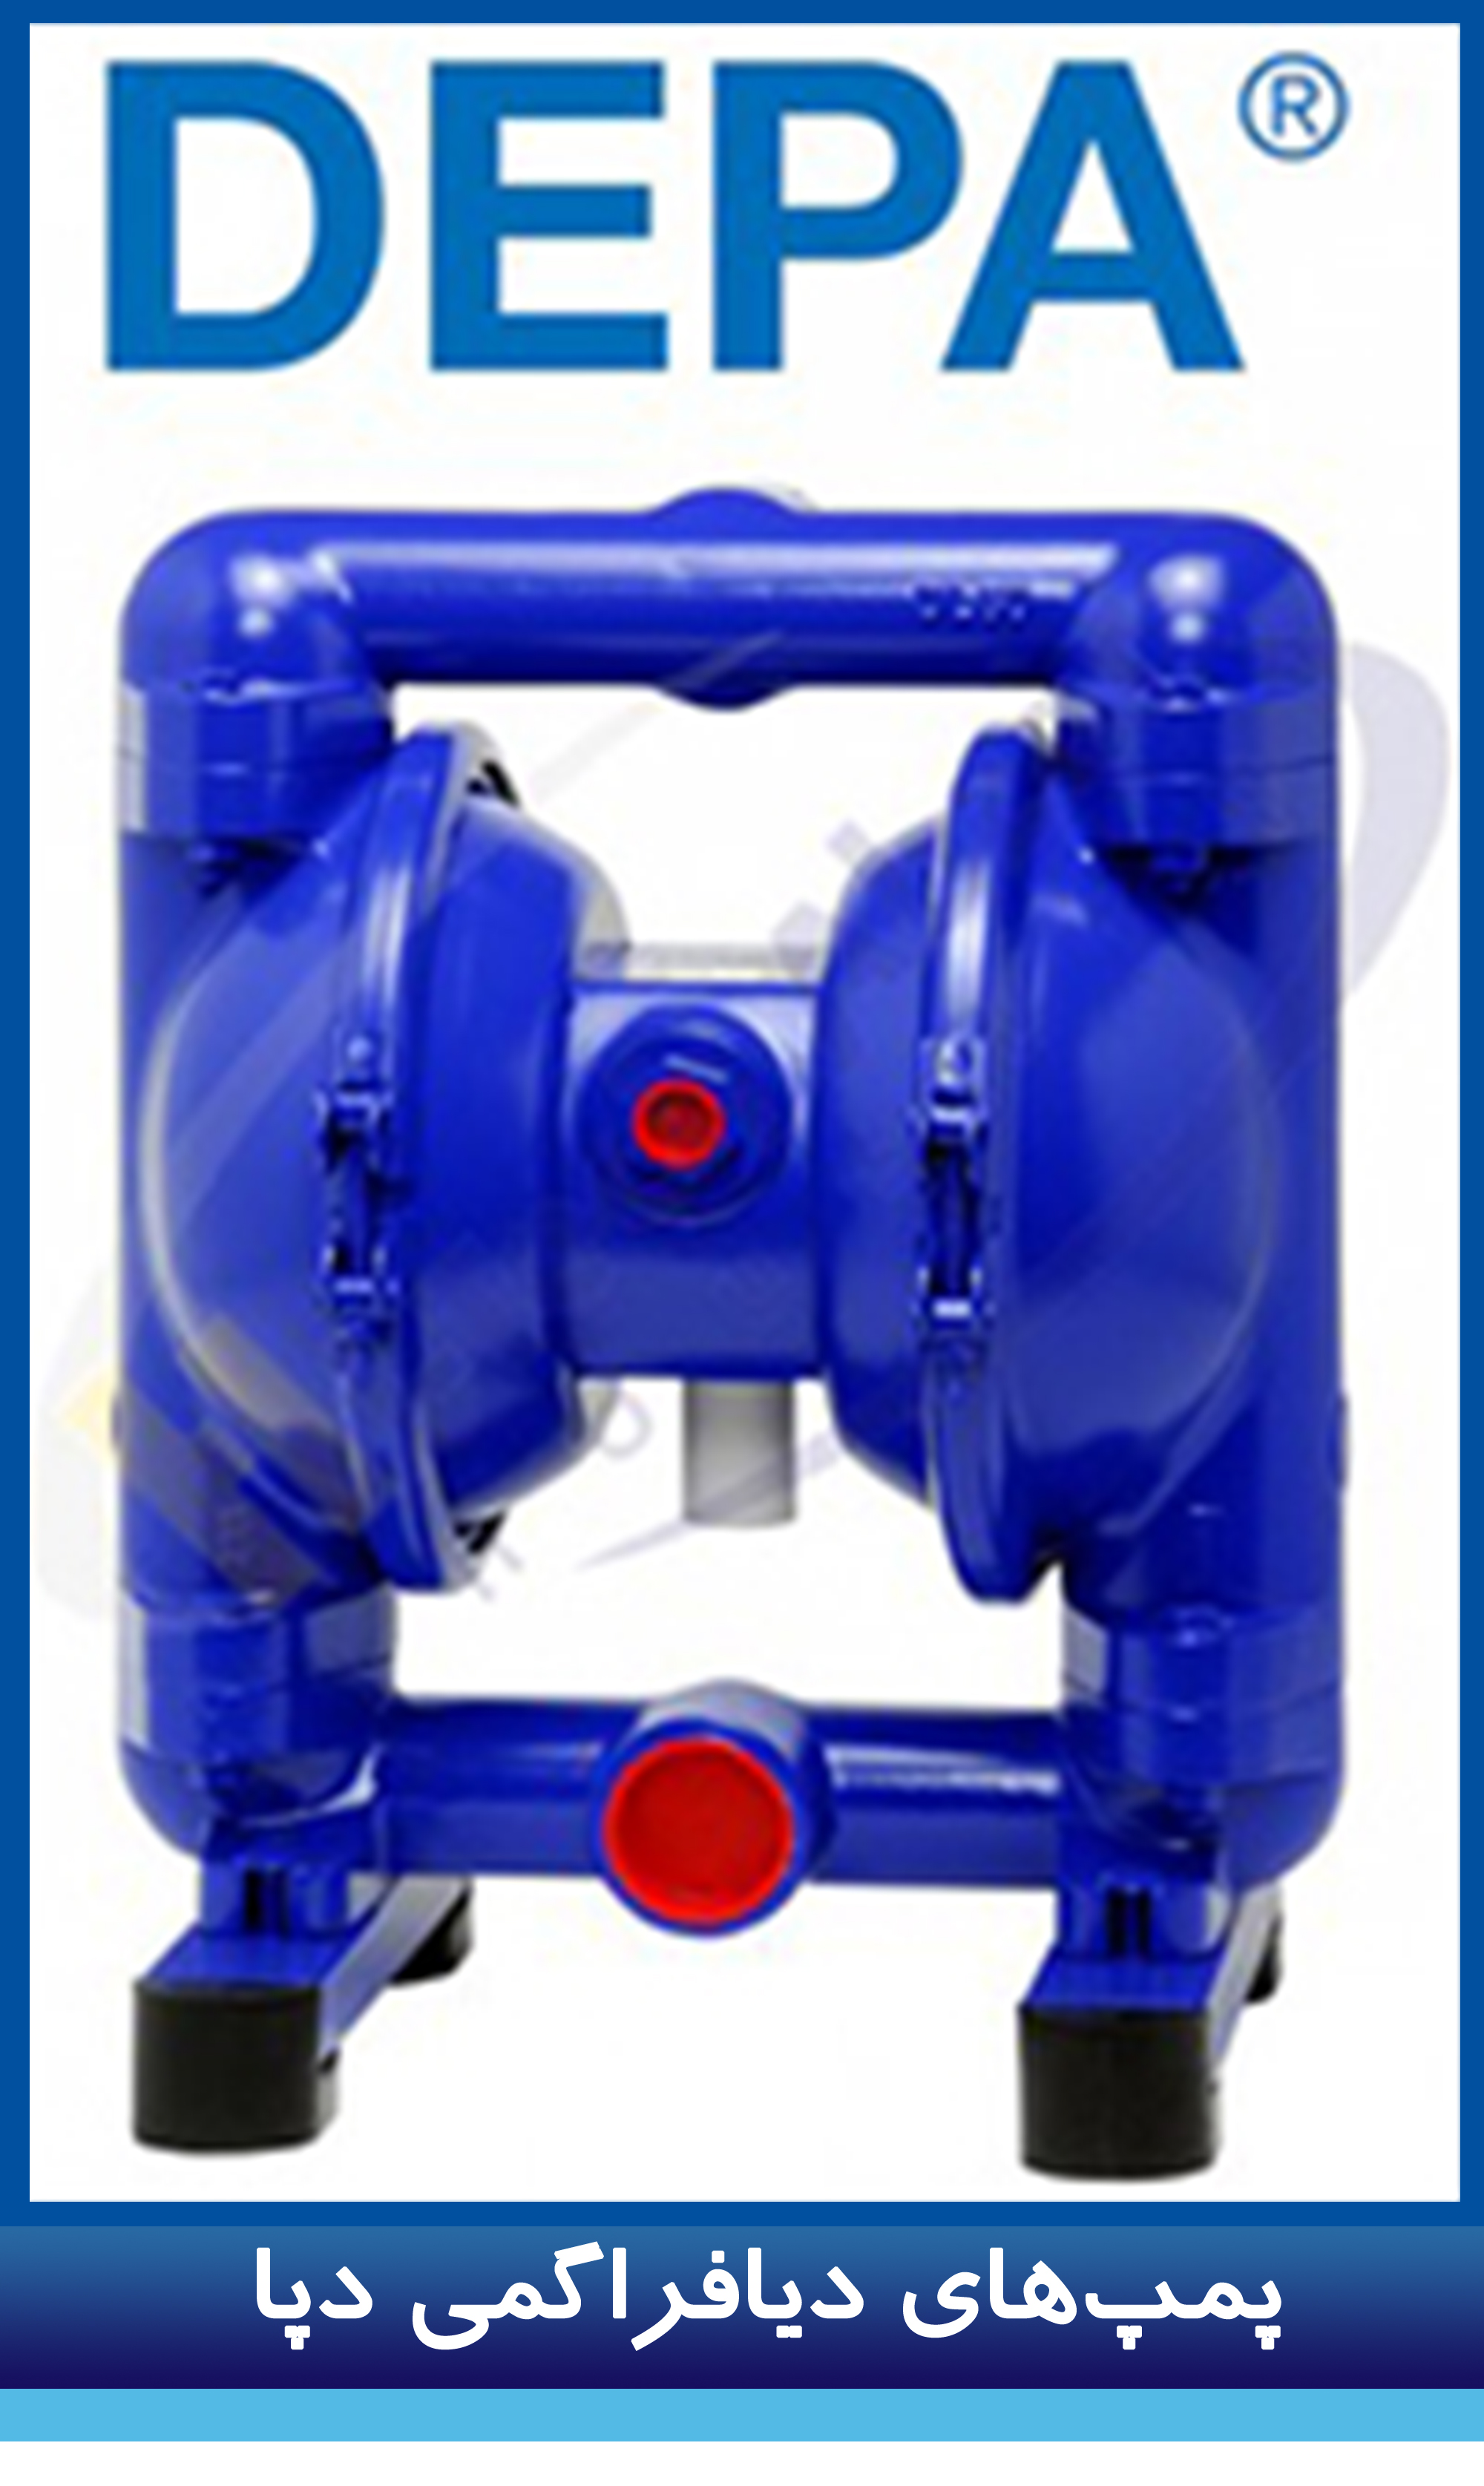 depa_diaphragm_pump_400